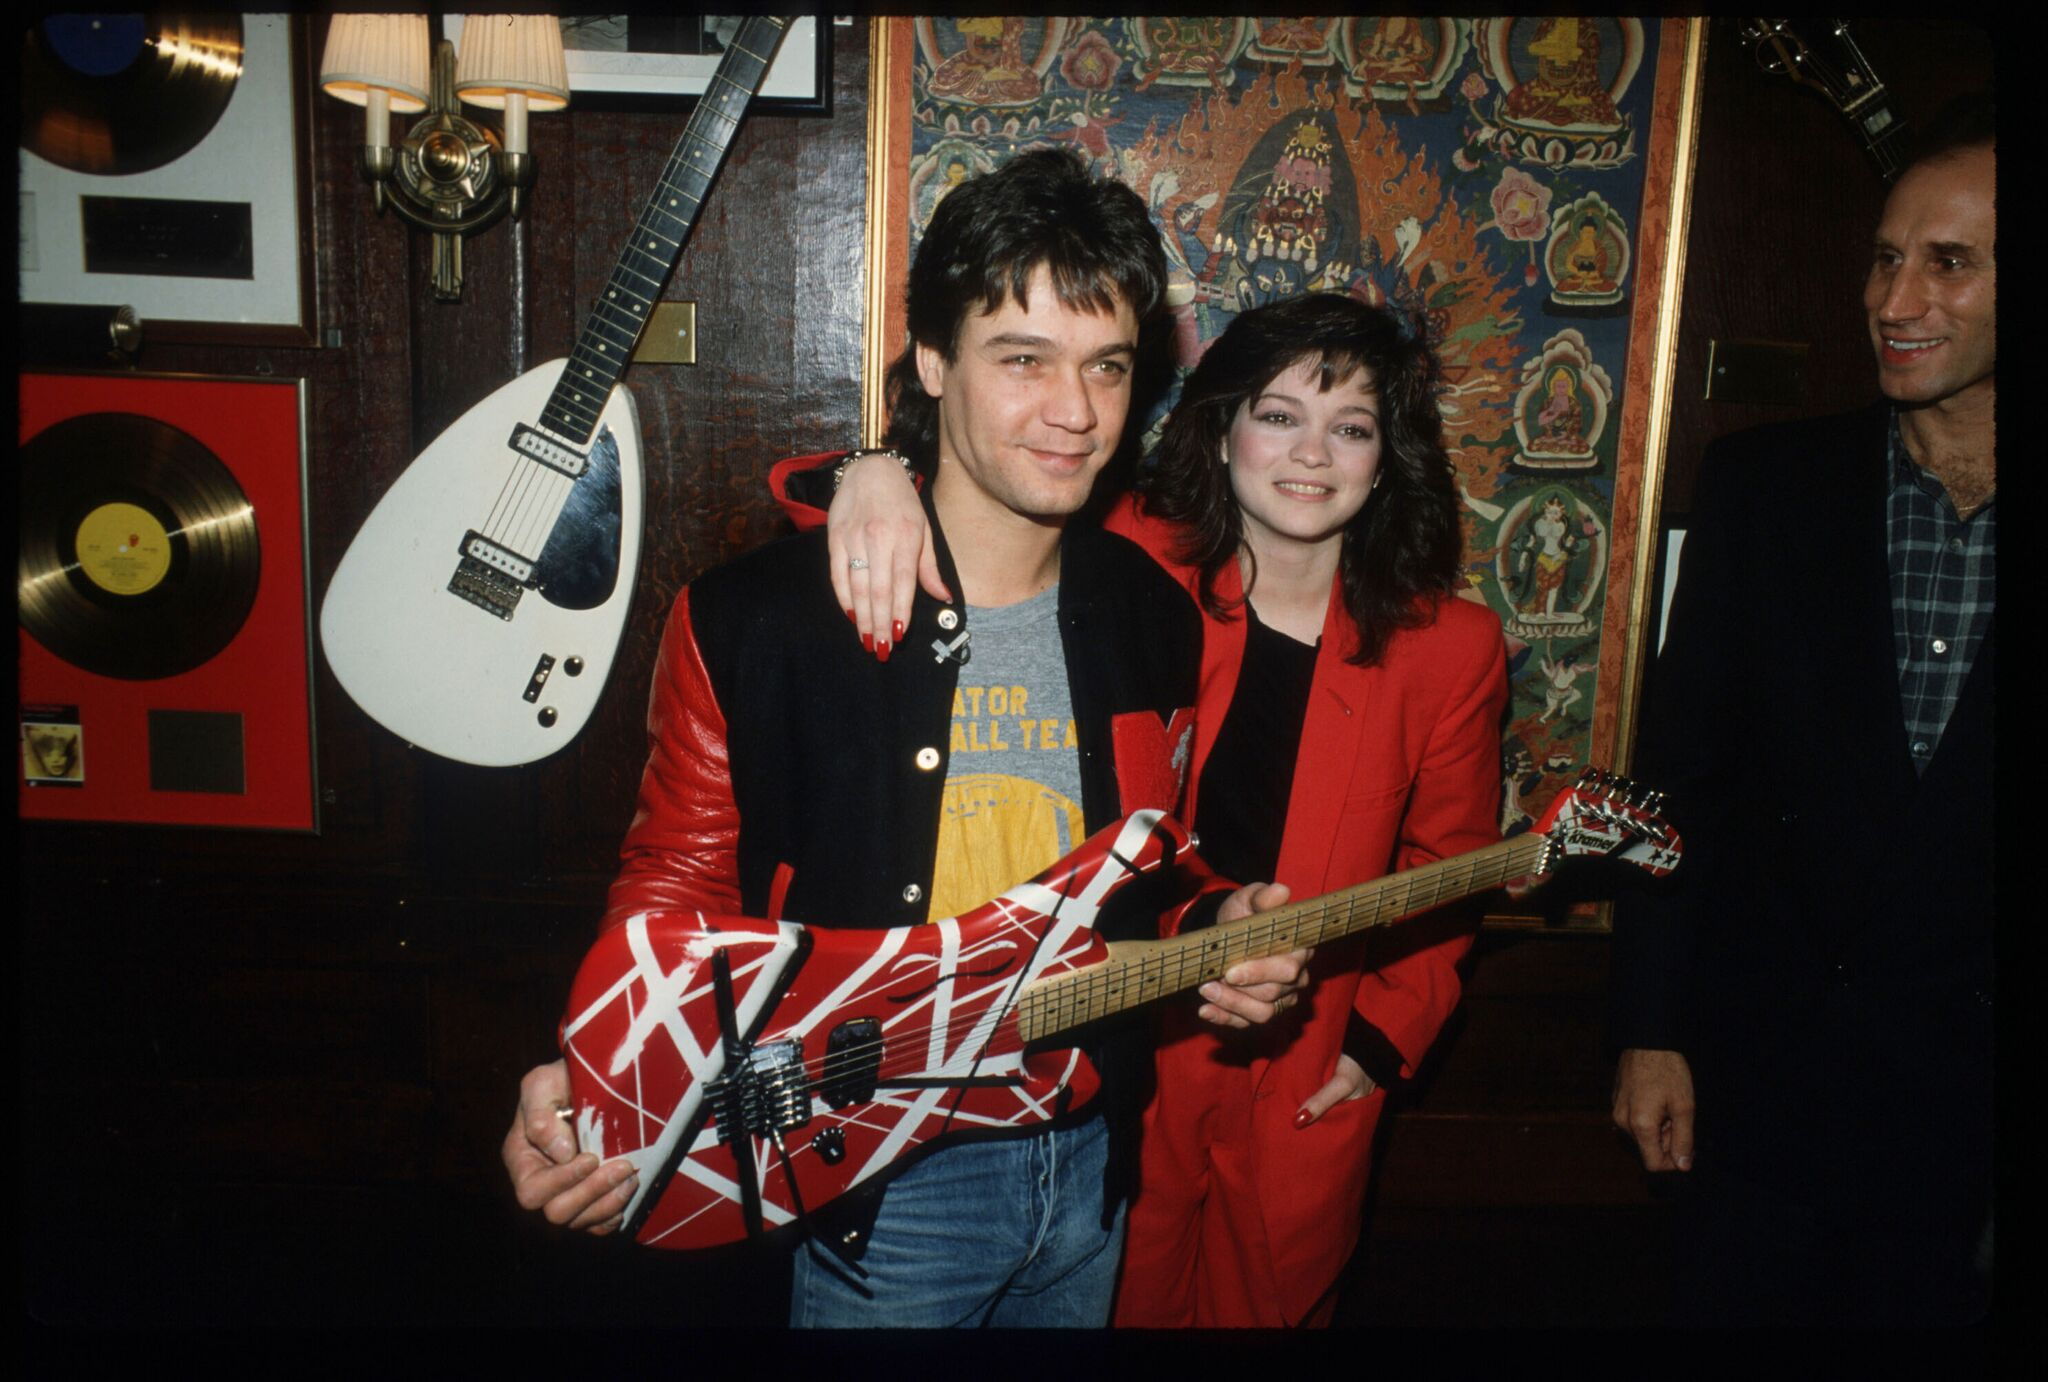 Eddie Van Halen with his wife Valerie Bertinelli February 18, 1995 | Getty Images / Global Images Ukraine